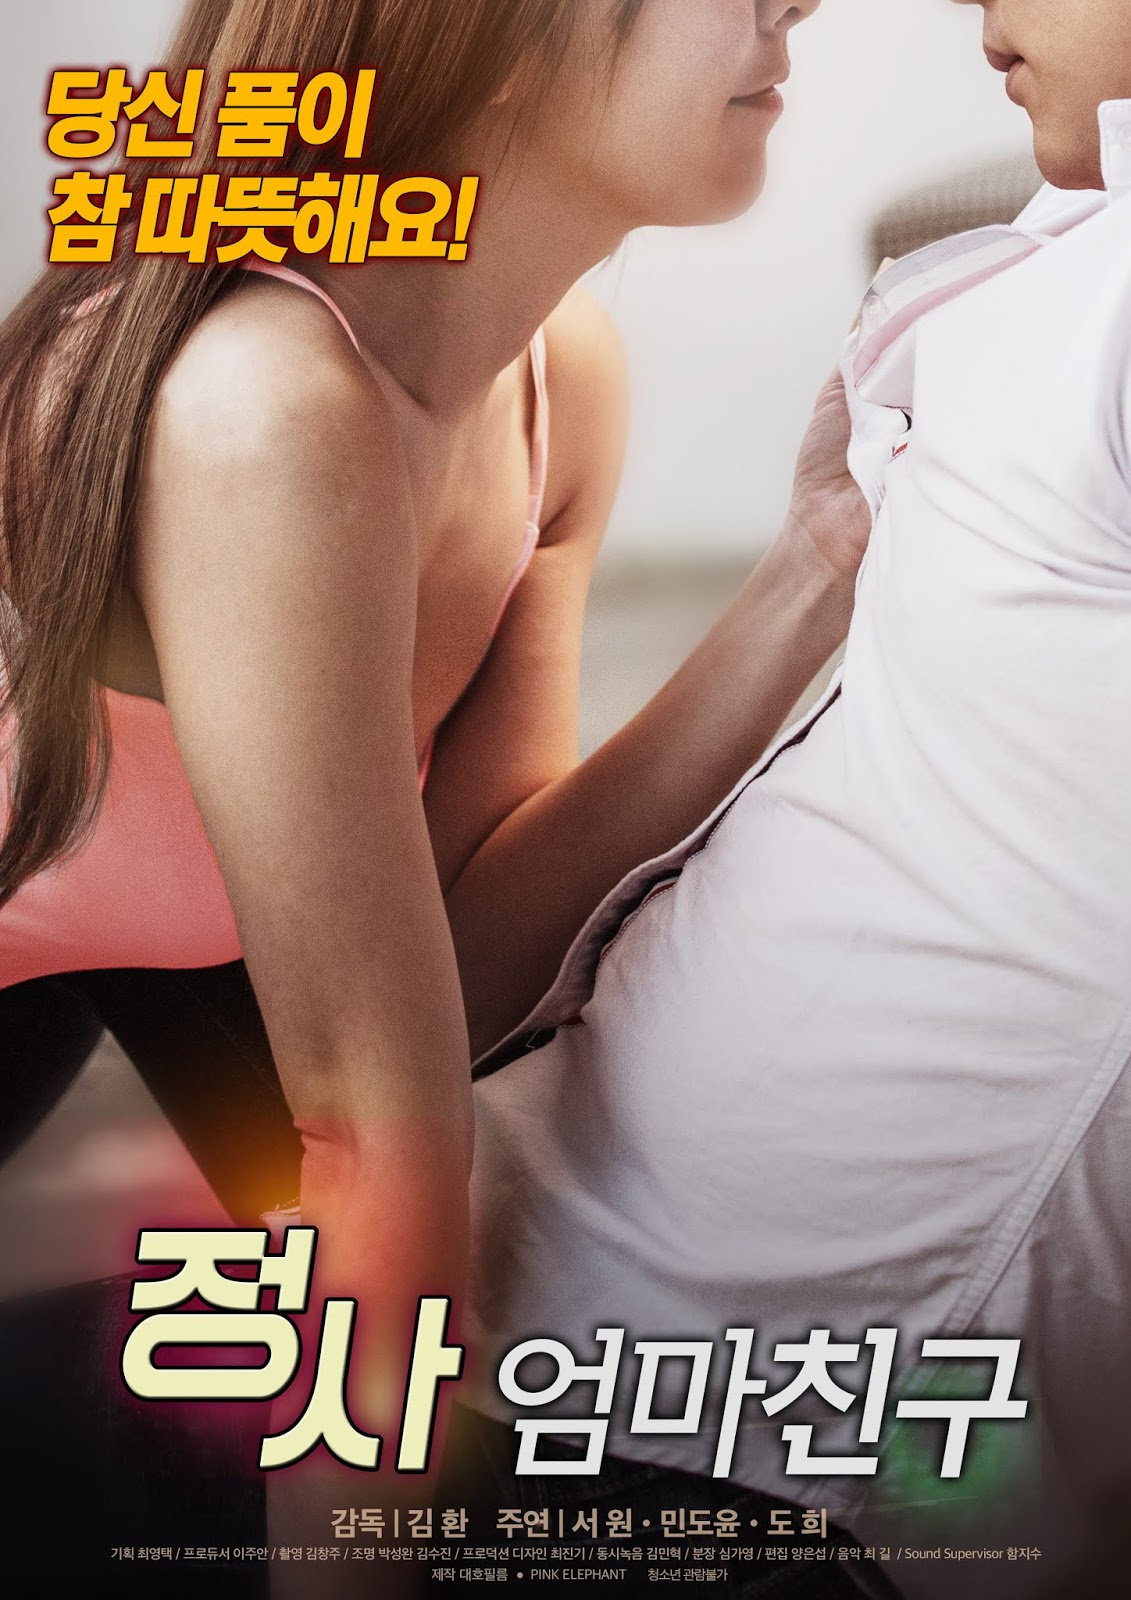 Jung Sa Mother Friend Full Korea 18+ Adult Movie Online Free